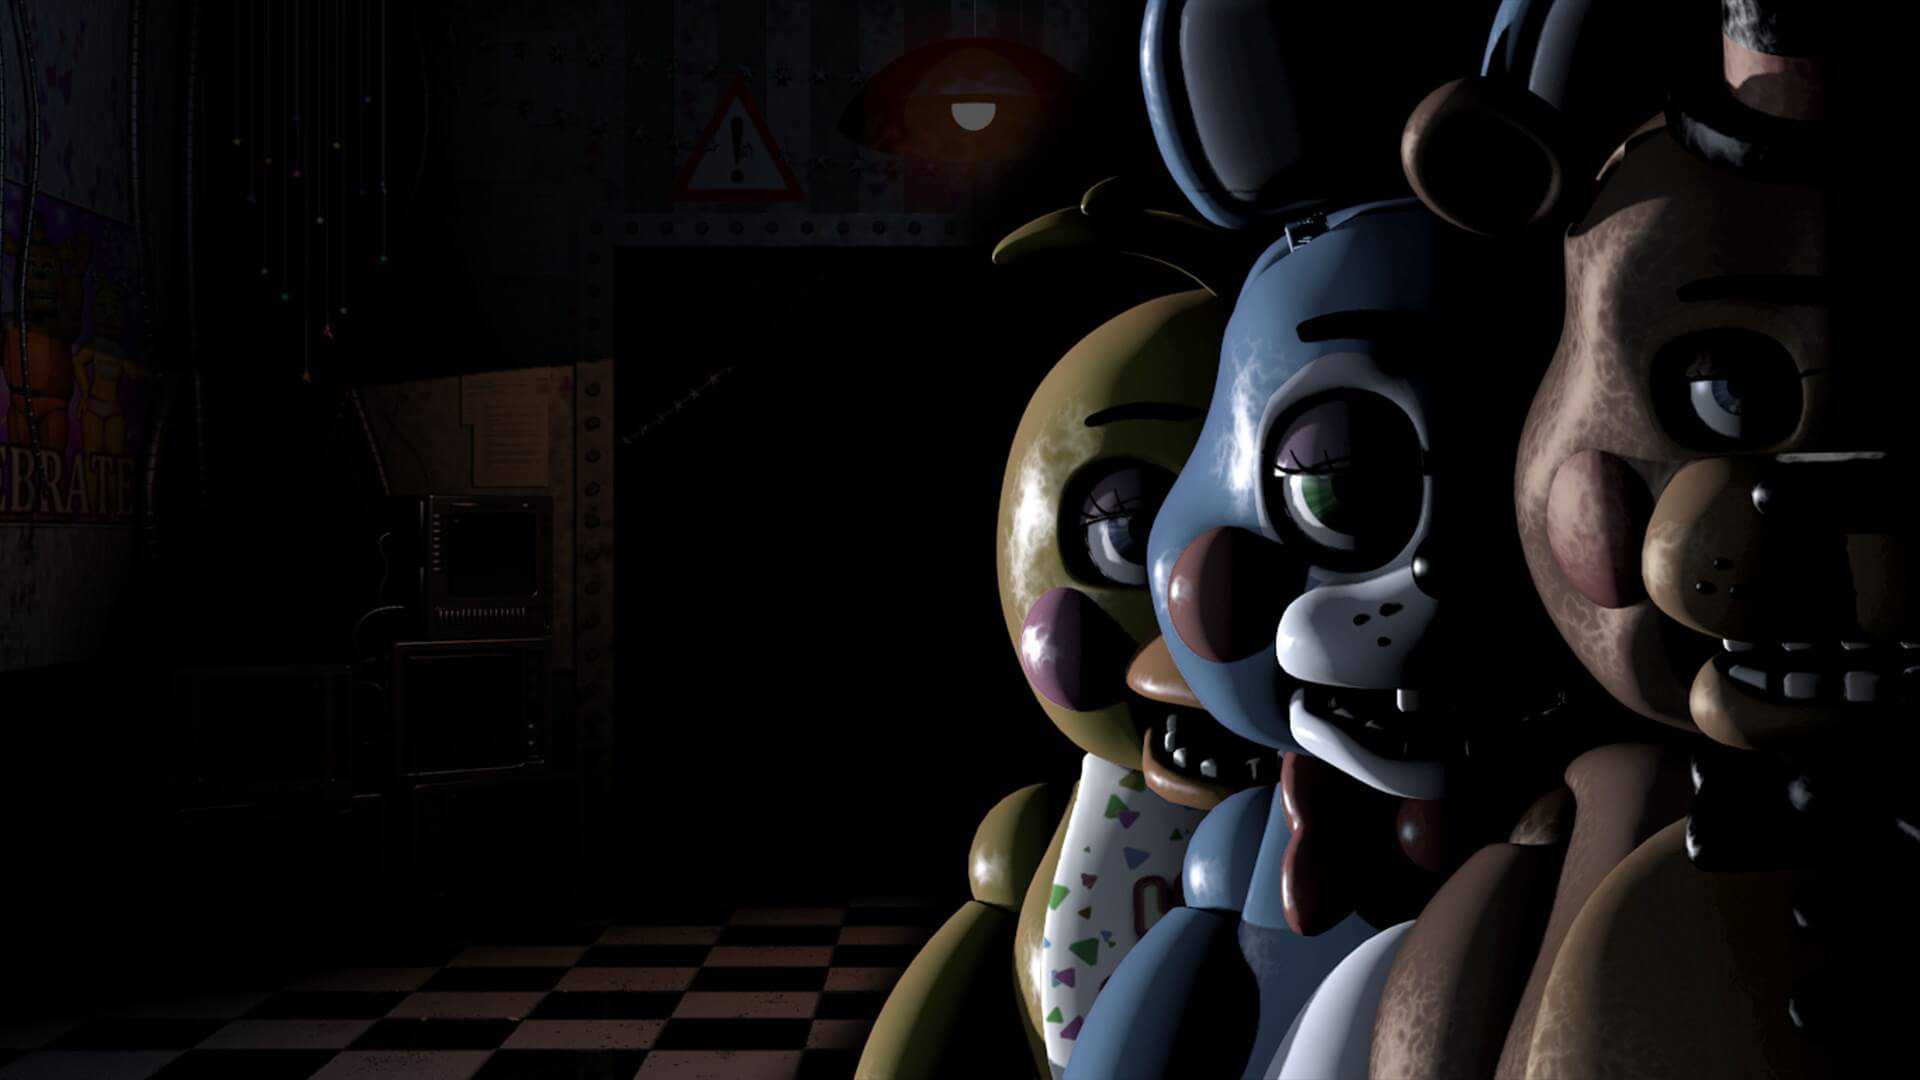 FIVE NIGHTS AT FREDDY'S 2 Download PC